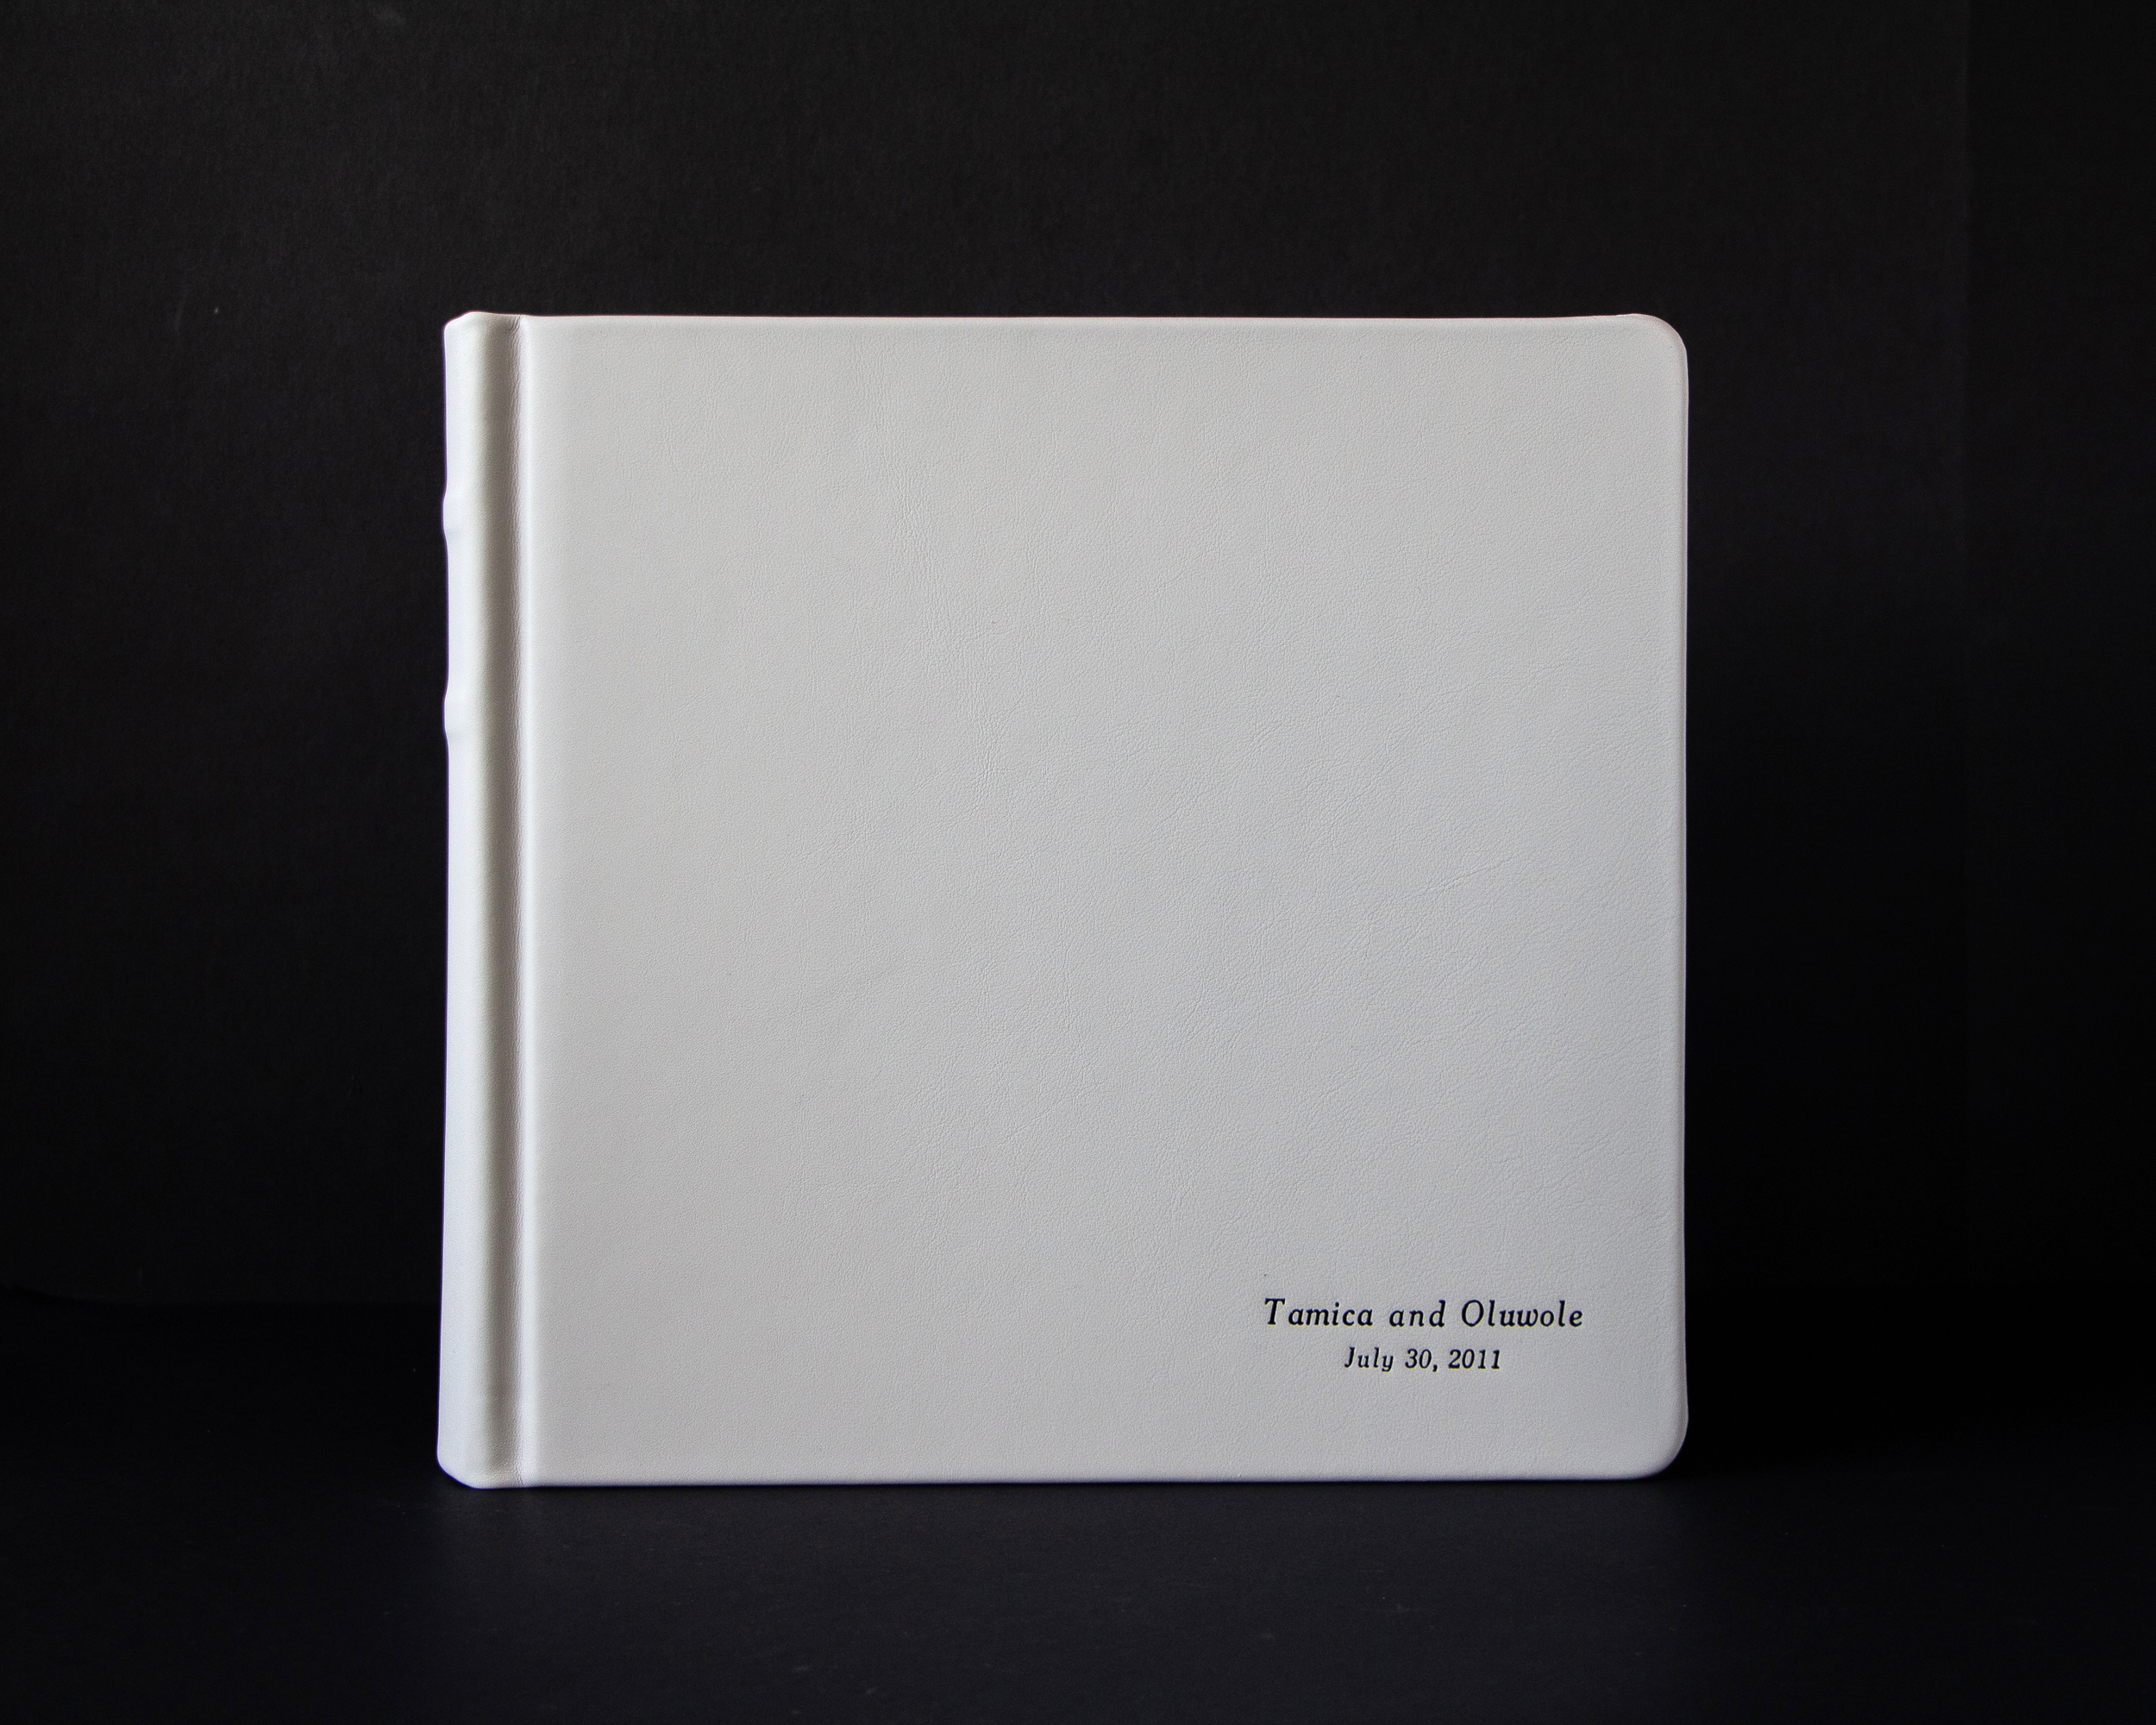 10x10 800 Matted Album with Two Lines of Italic Imprinting in Silver in Lower Right